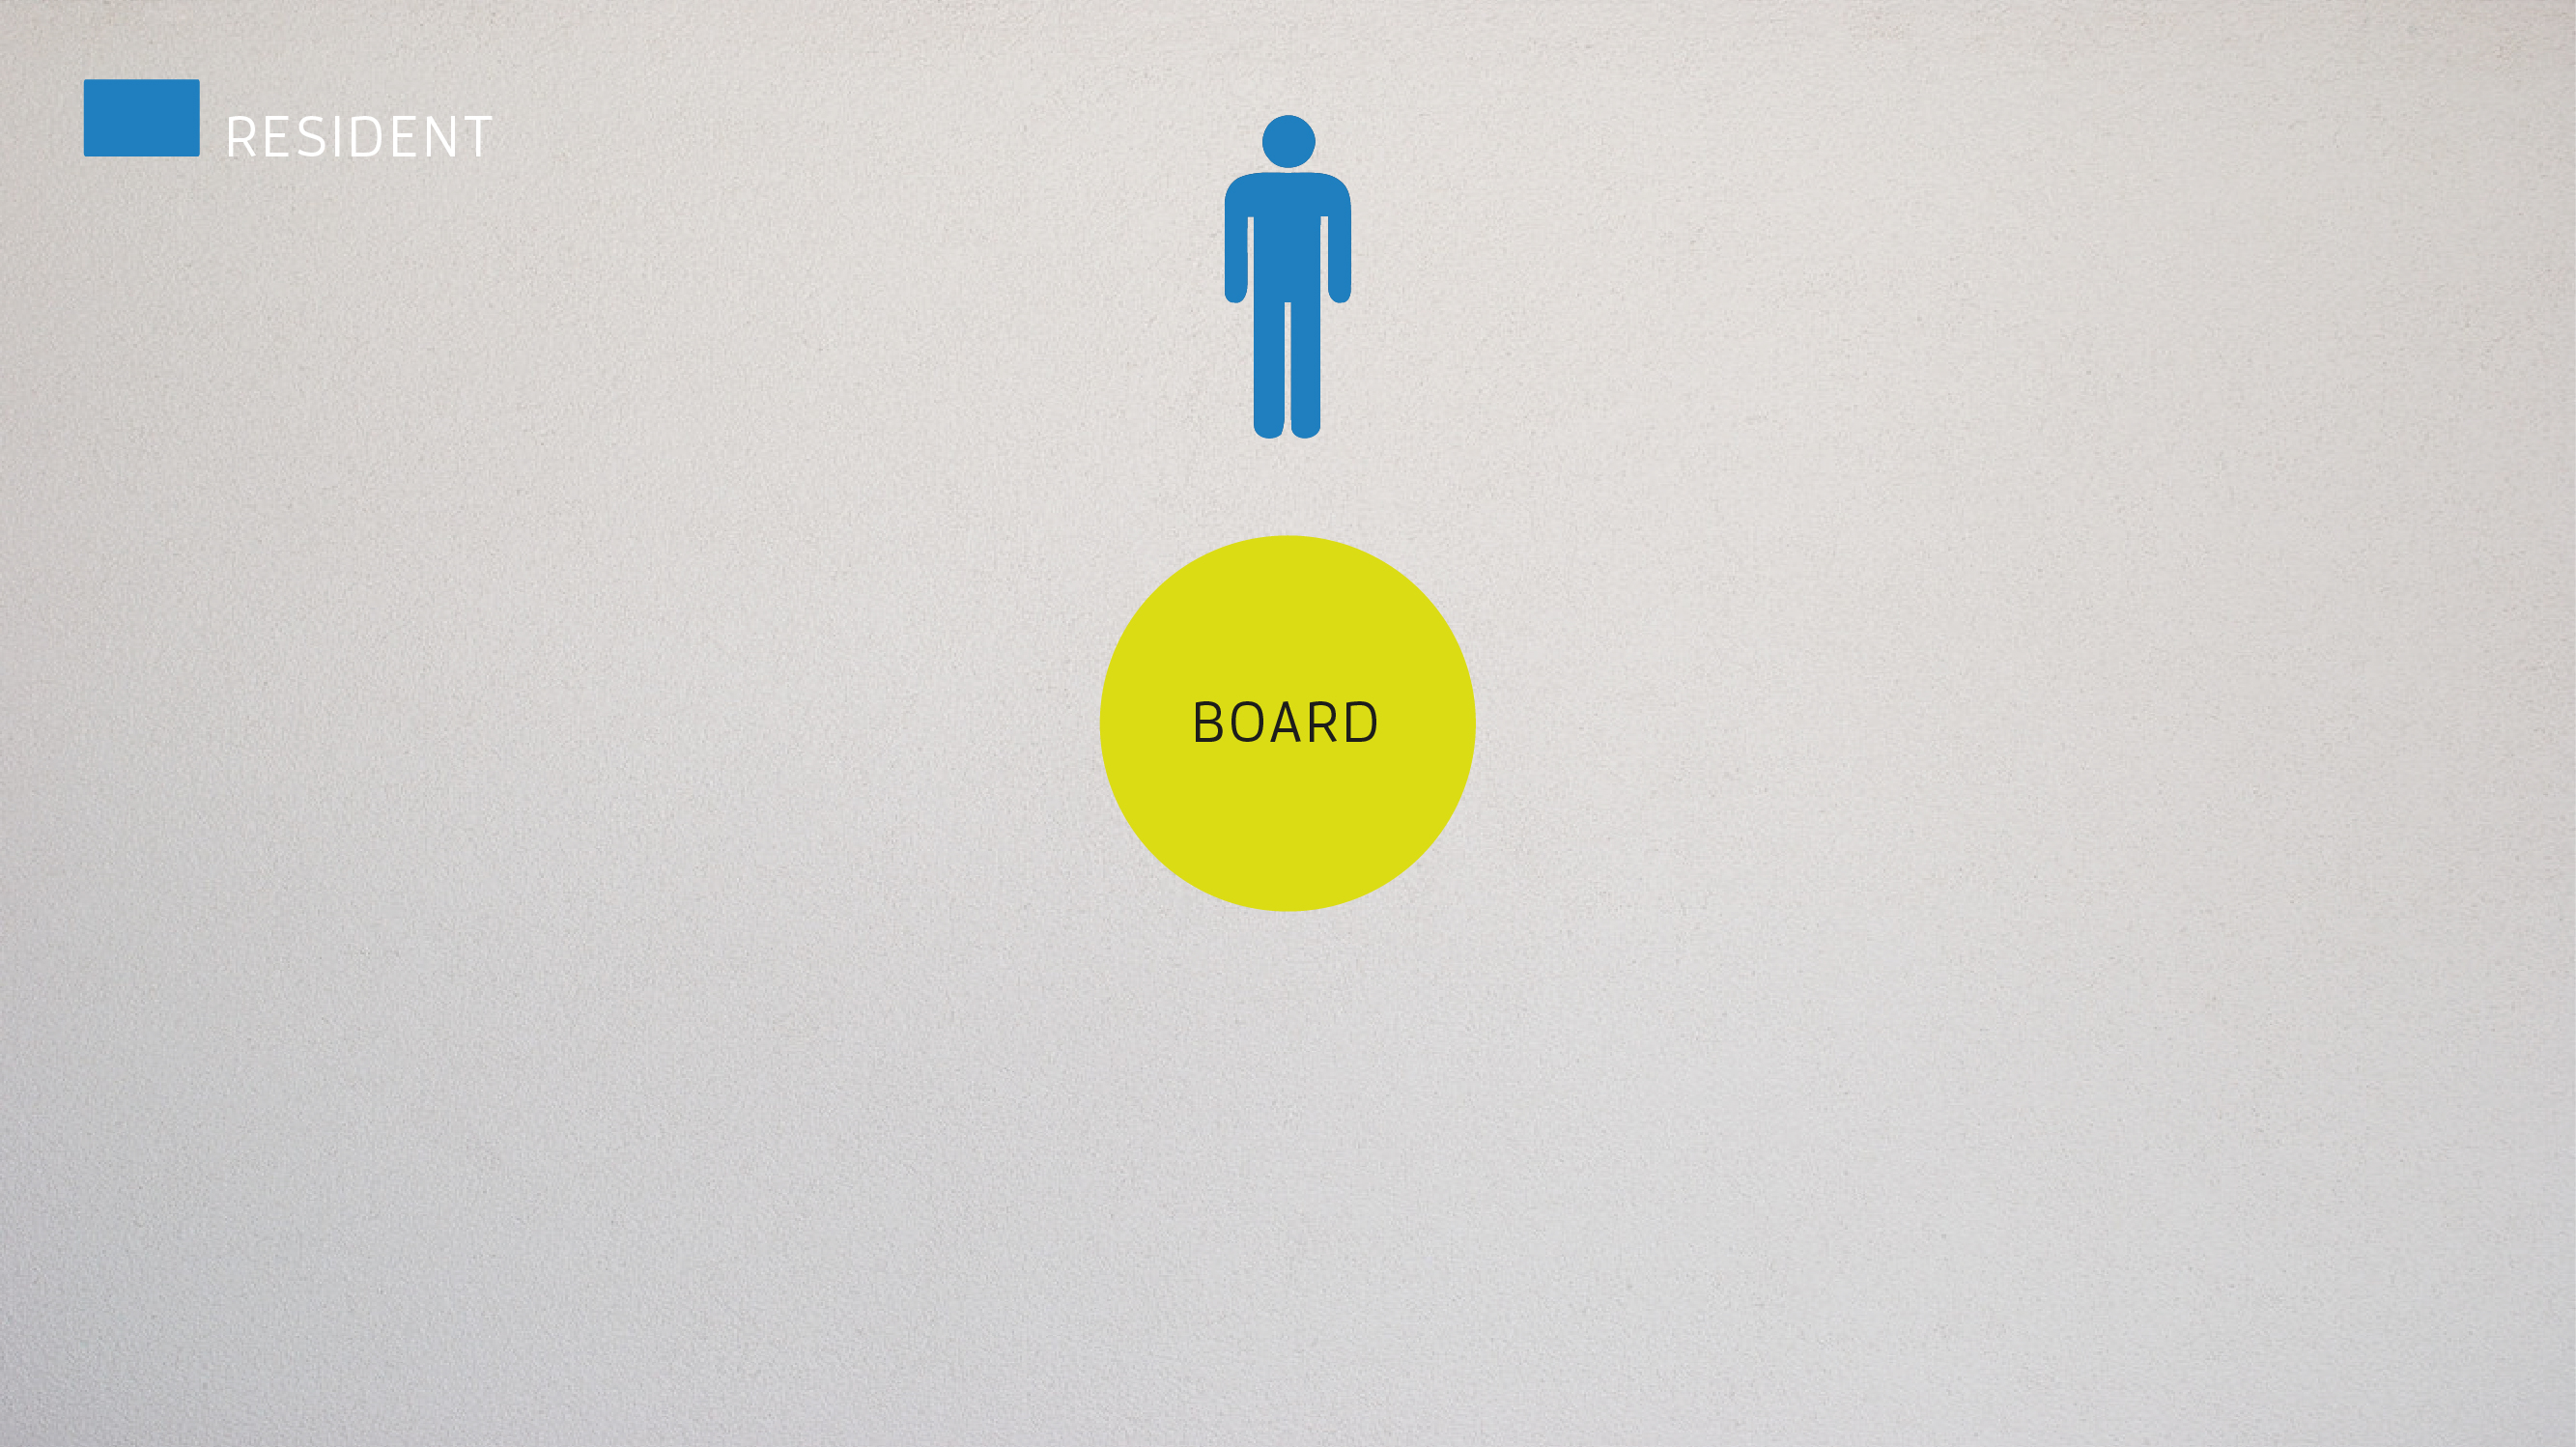 01Board CompositionOnePersonCompany